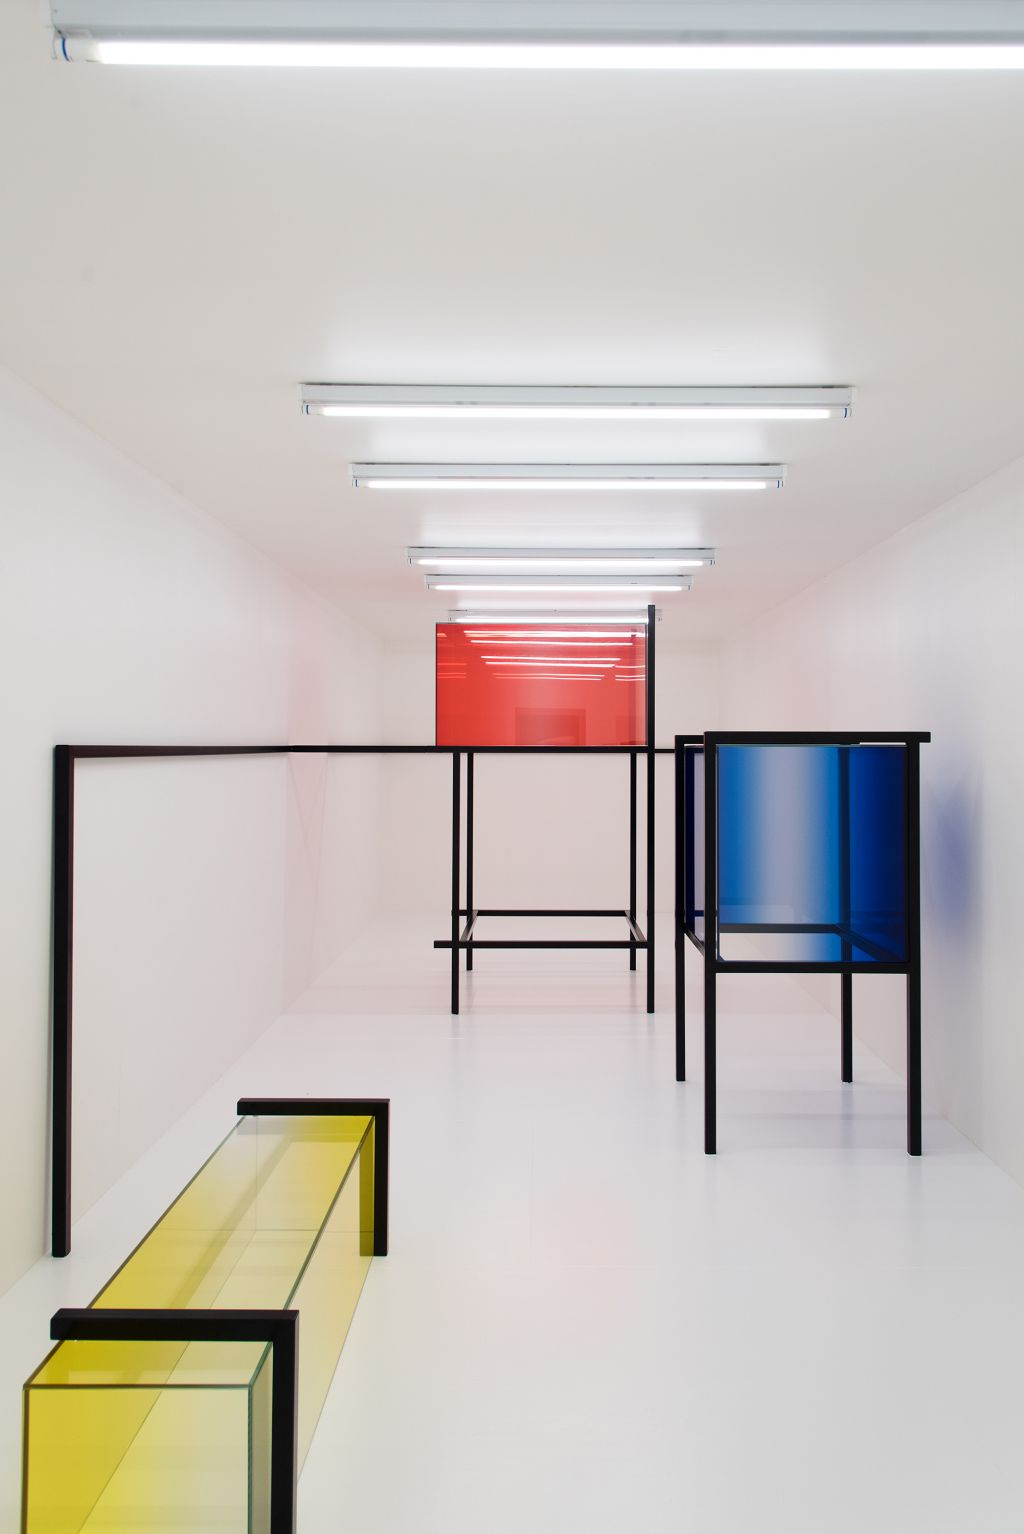 Spatial Composition in Red, Blue, and Yellow by Studio Sabine Marcelis. Foto Petra van der Ree